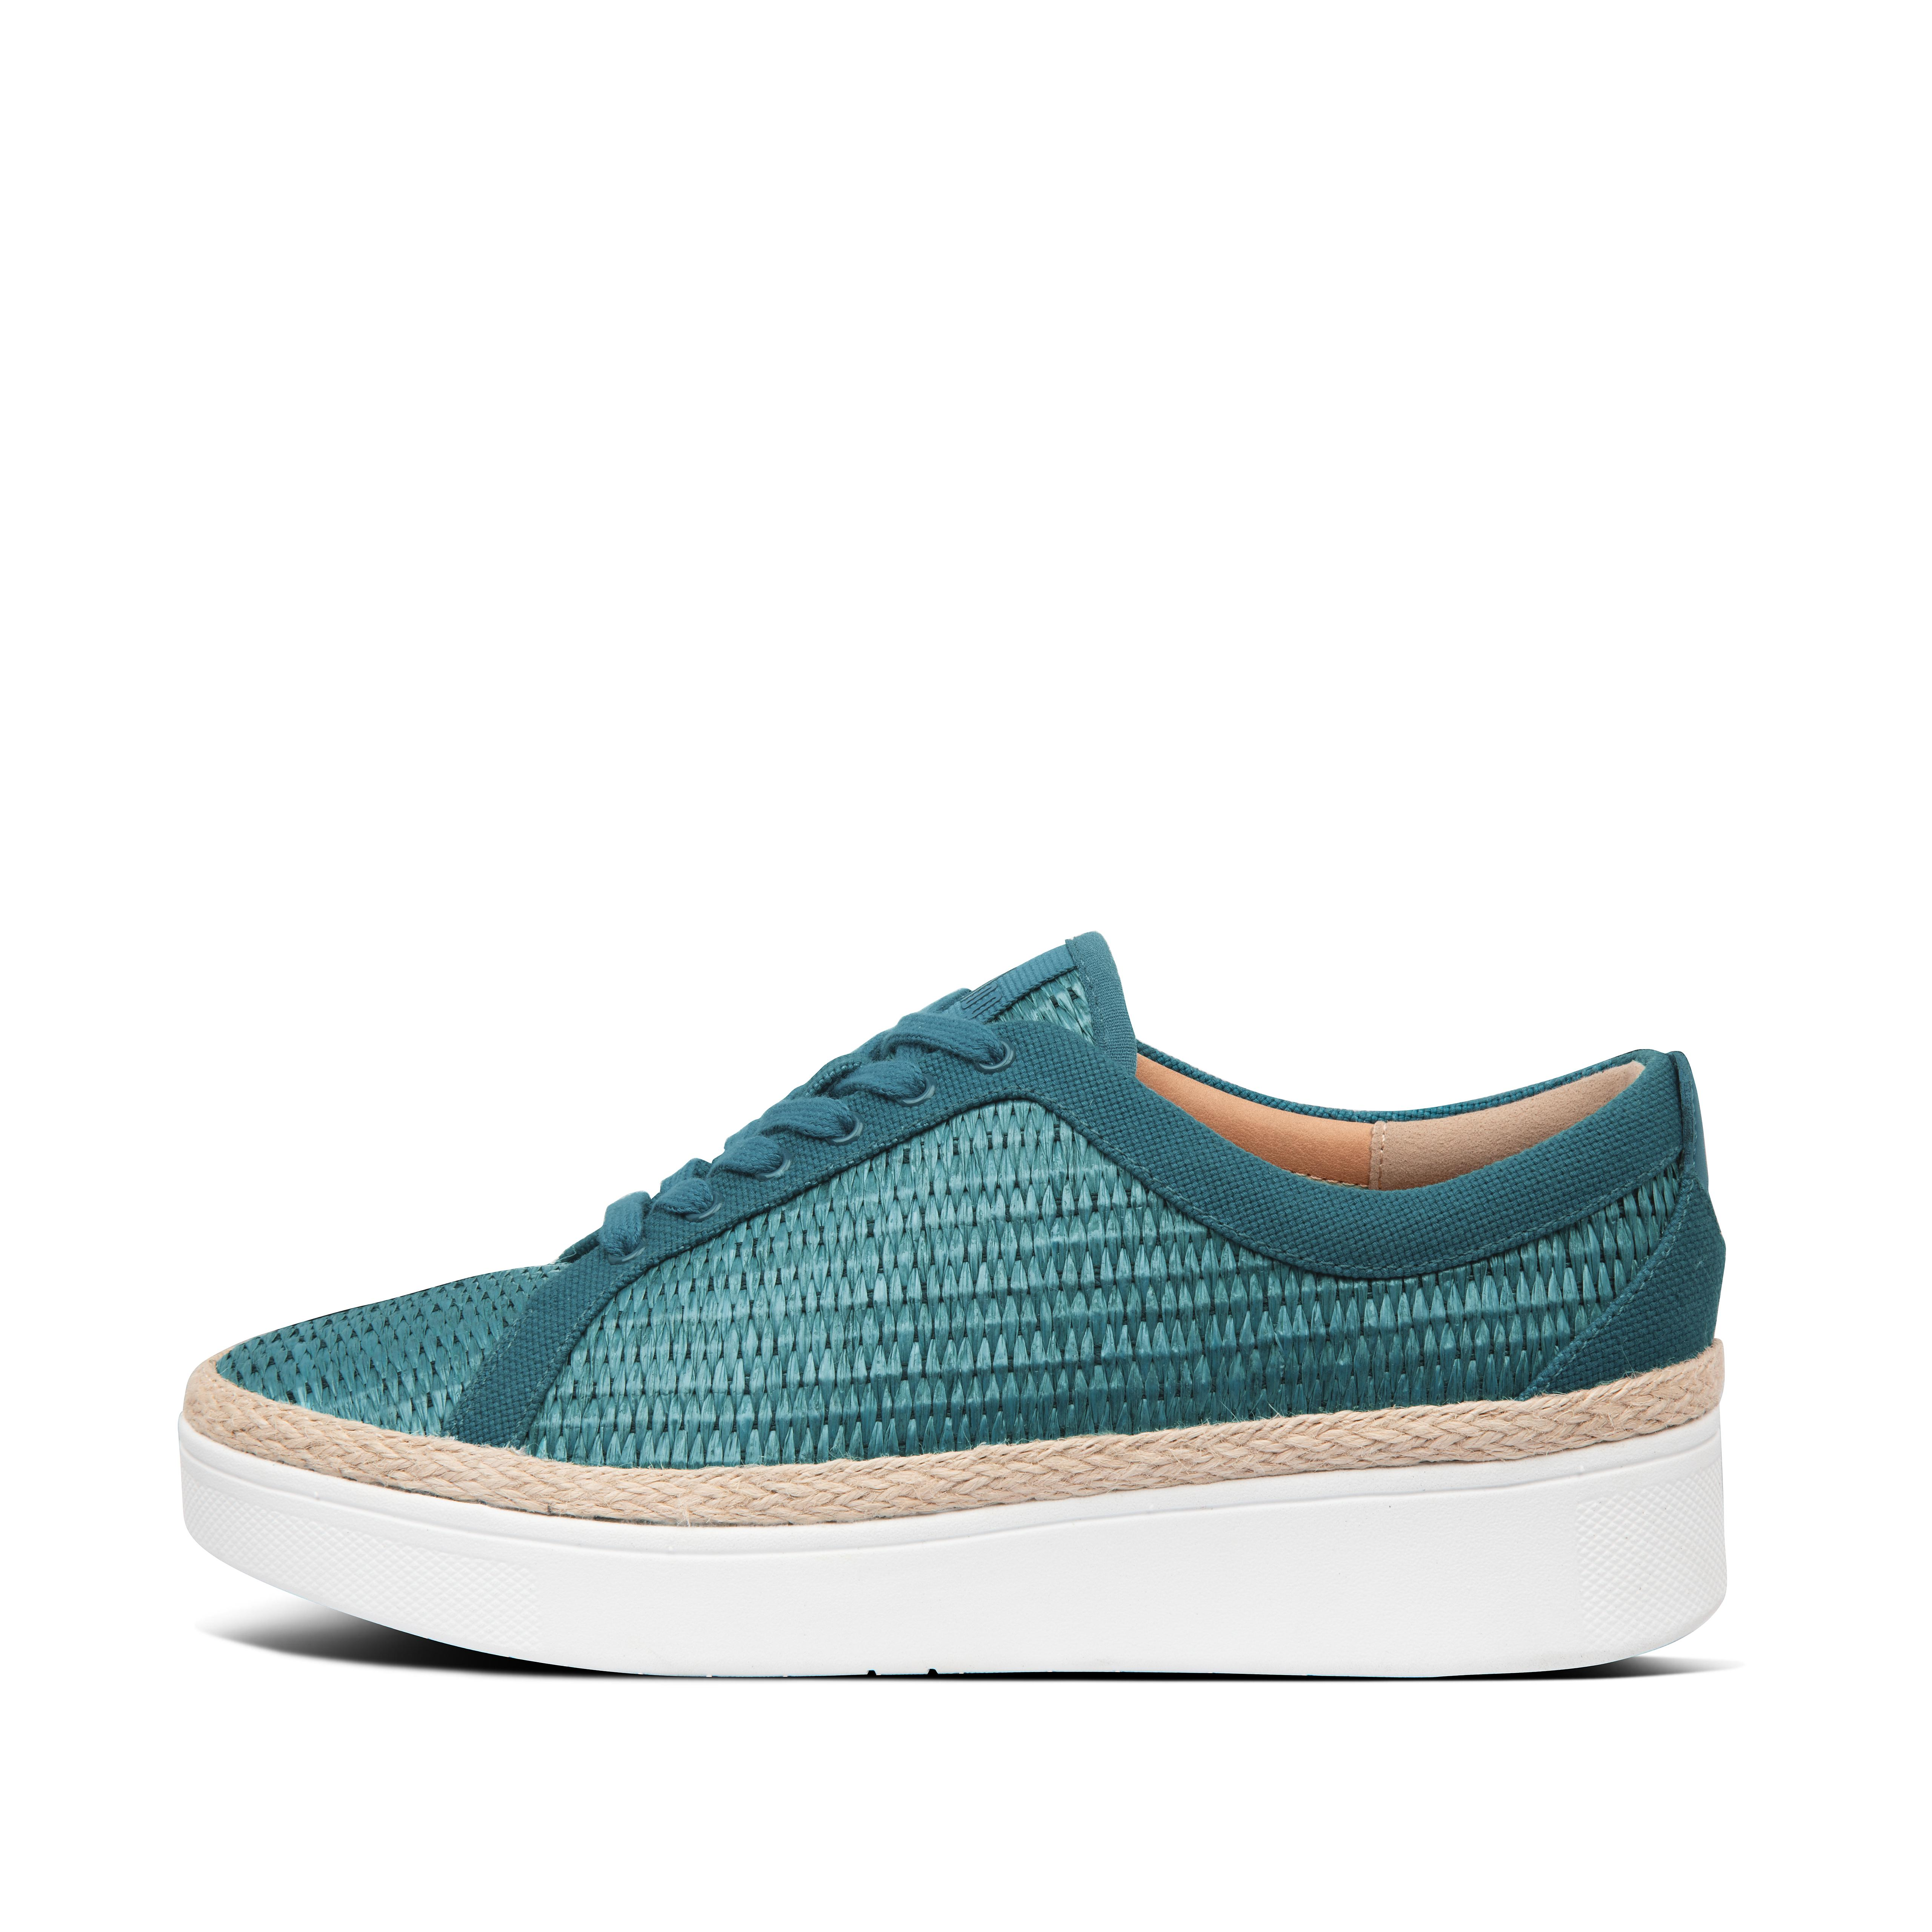 We\\\'ve reworked our tennis-style Rally trainer in woven raffia, with an espadrille-style jute trim. The natural fibres add texture to your look and give a chic, laidback, beachy vibe. While the classic shape works with everything from floaty dresses to denim cut-offs. On our ultra-light, superflexible, all-day-cushioning Anatomicush™ midsoles. These raffia weave sneakers are your stylish summer go-tos on busy days when comfort is non-negotiable.